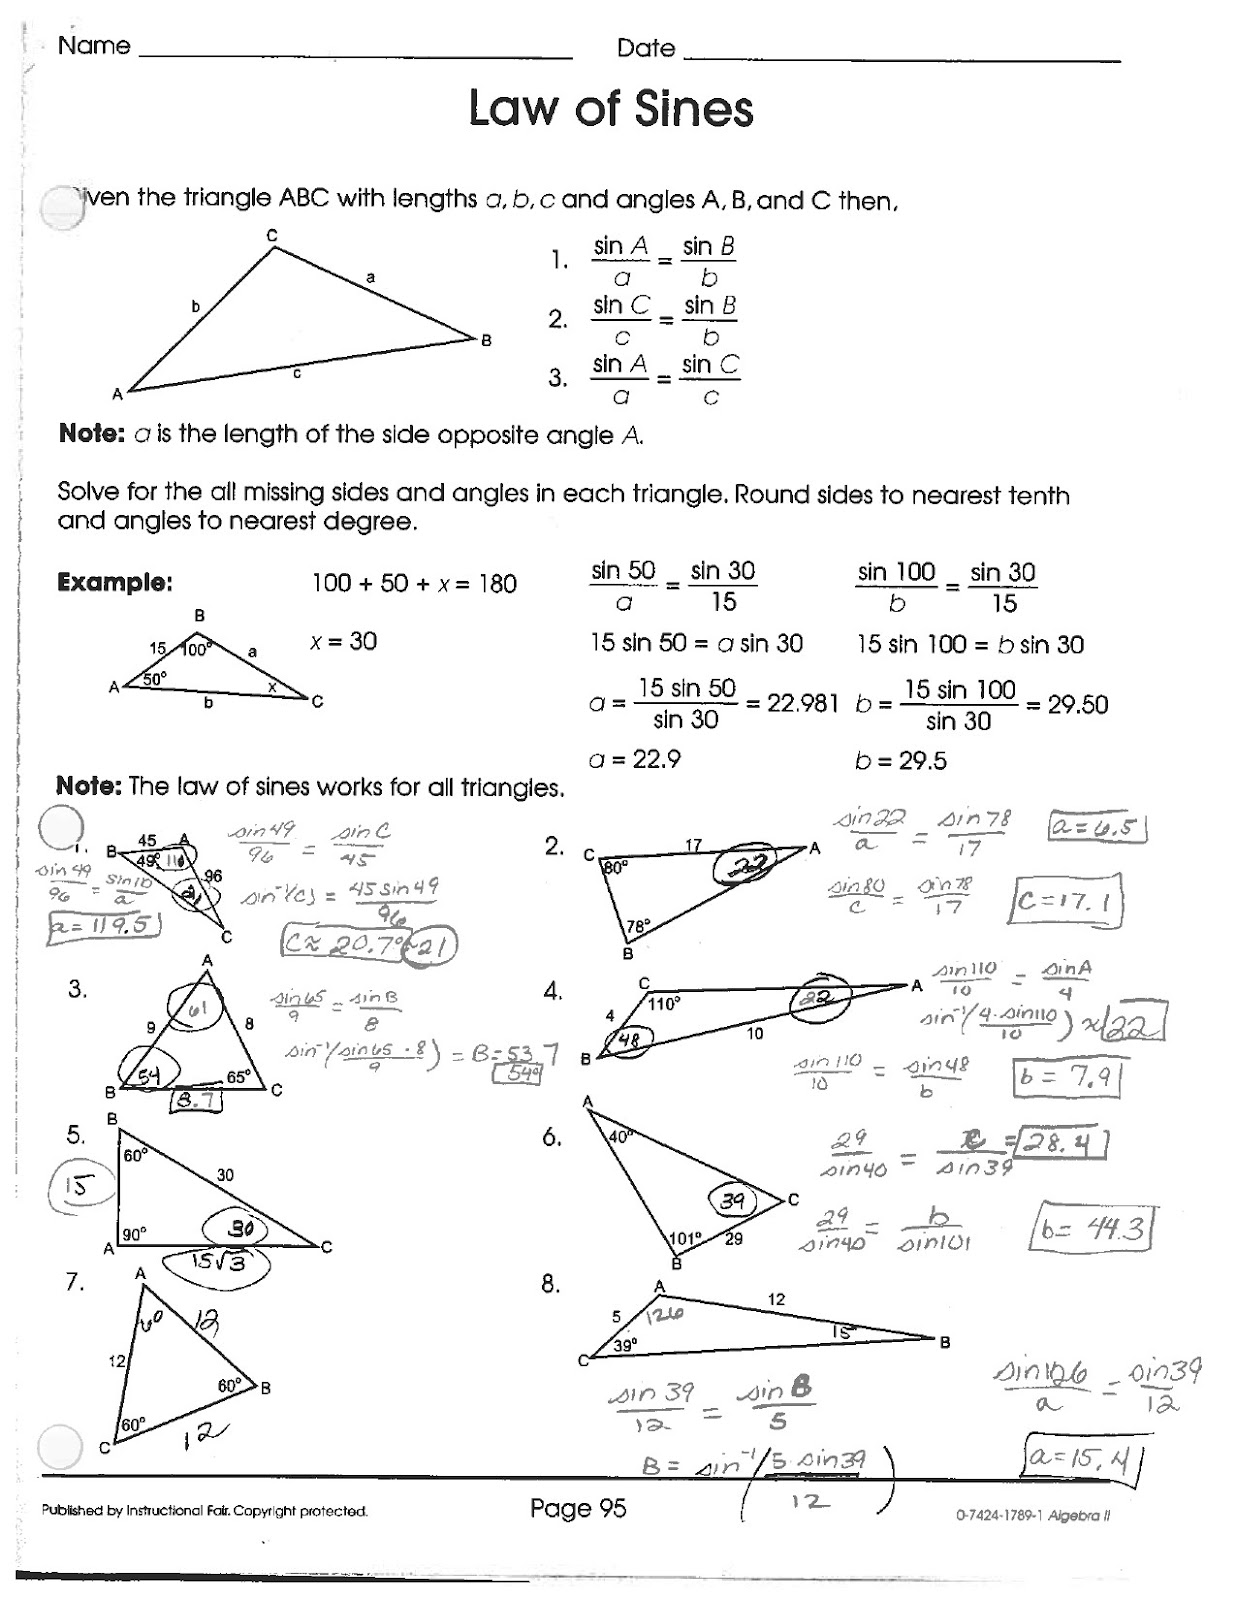 Surface Area Of A Sphere Worksheet – Volume of Spheres Worksheet